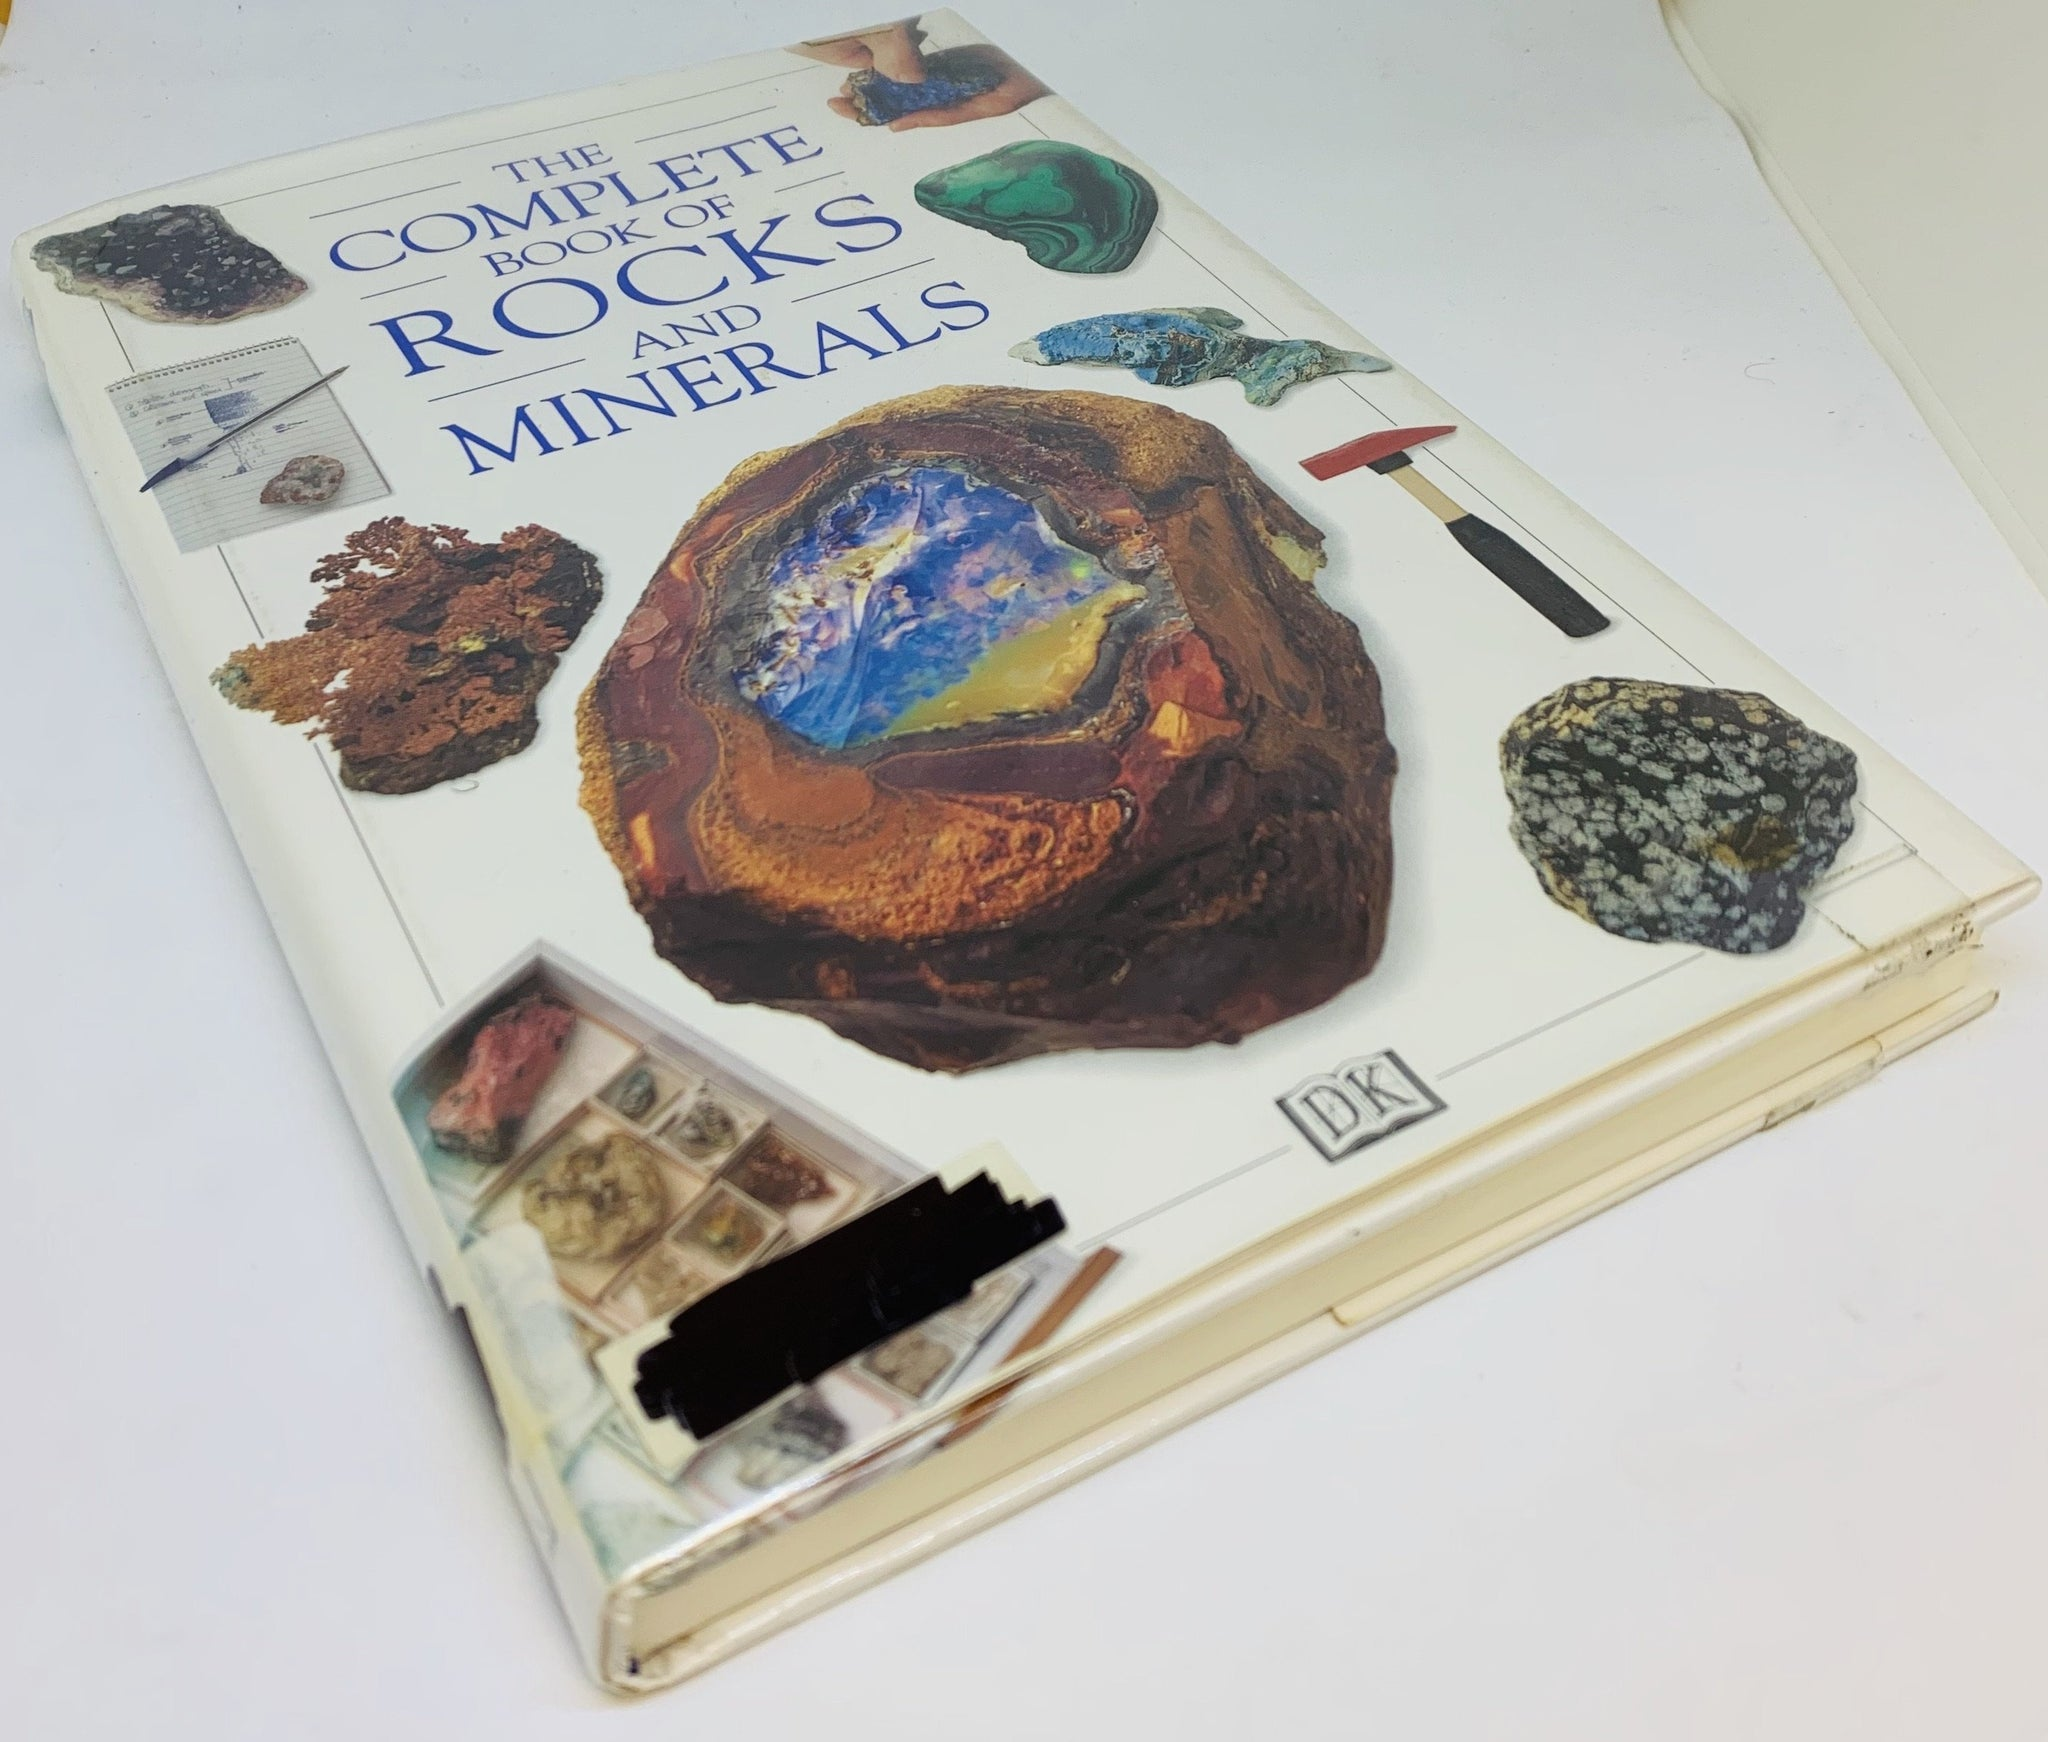 The Complete Book of Rocks and Minerals